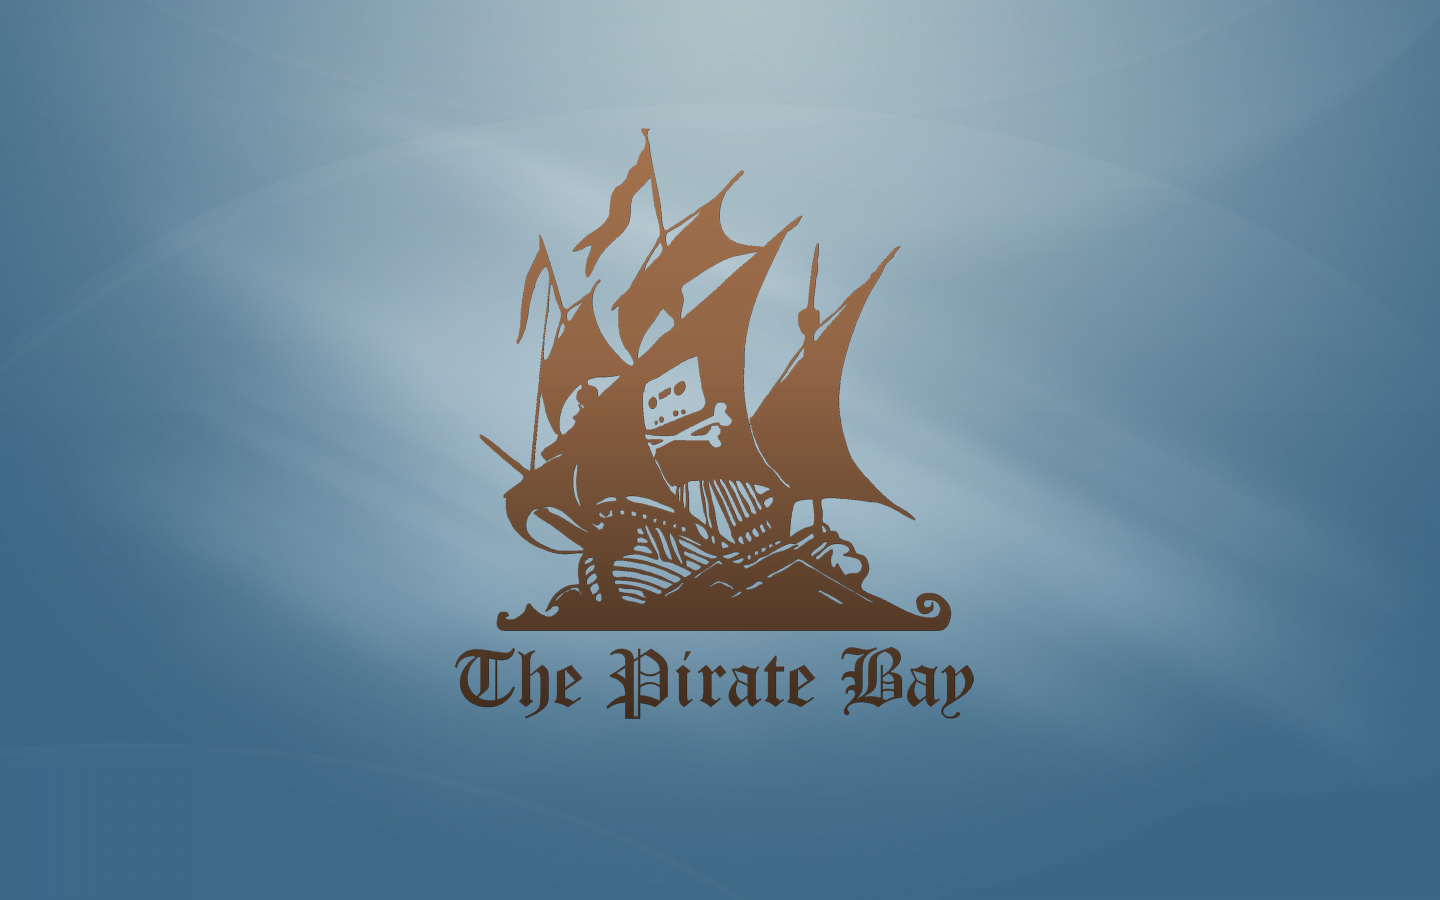 Pirate bay exposed picture